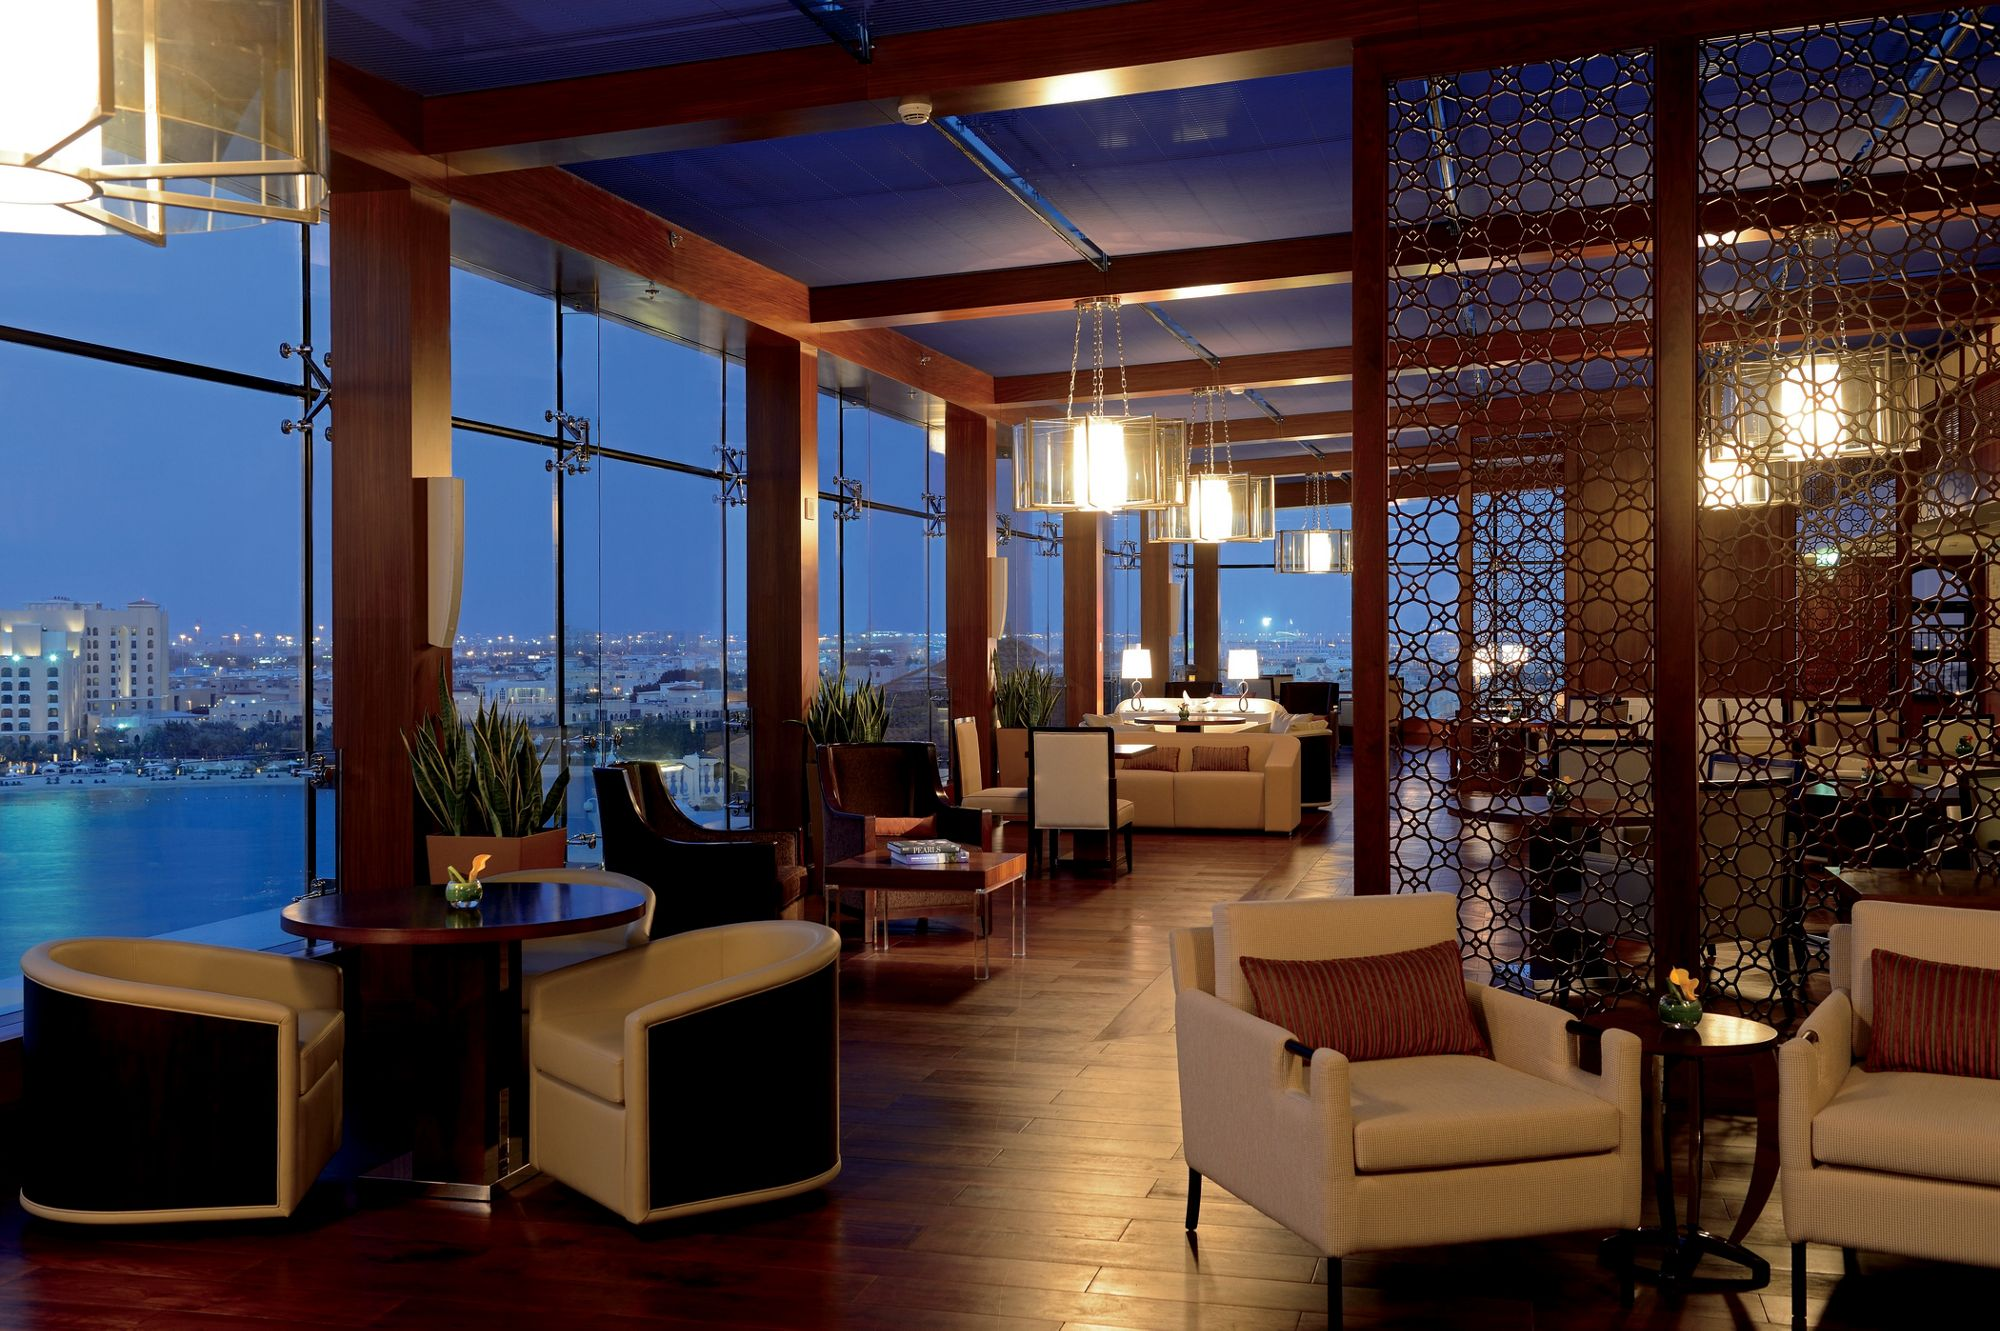 Luxury Hotels & Resorts in the Middle East   The Ritz-Carlton